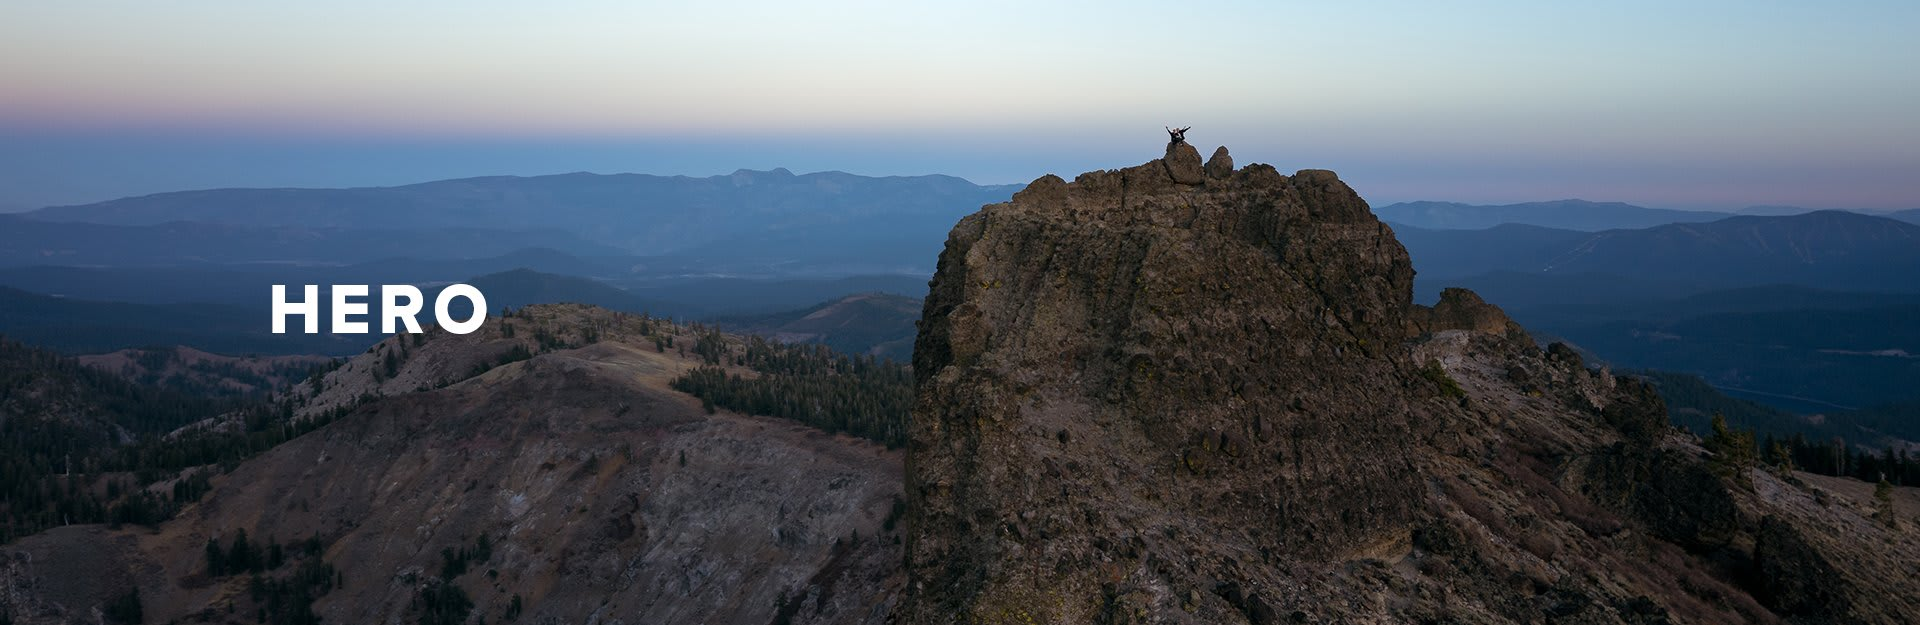 Hero, a landscape of rocky mountains with a blue horizon